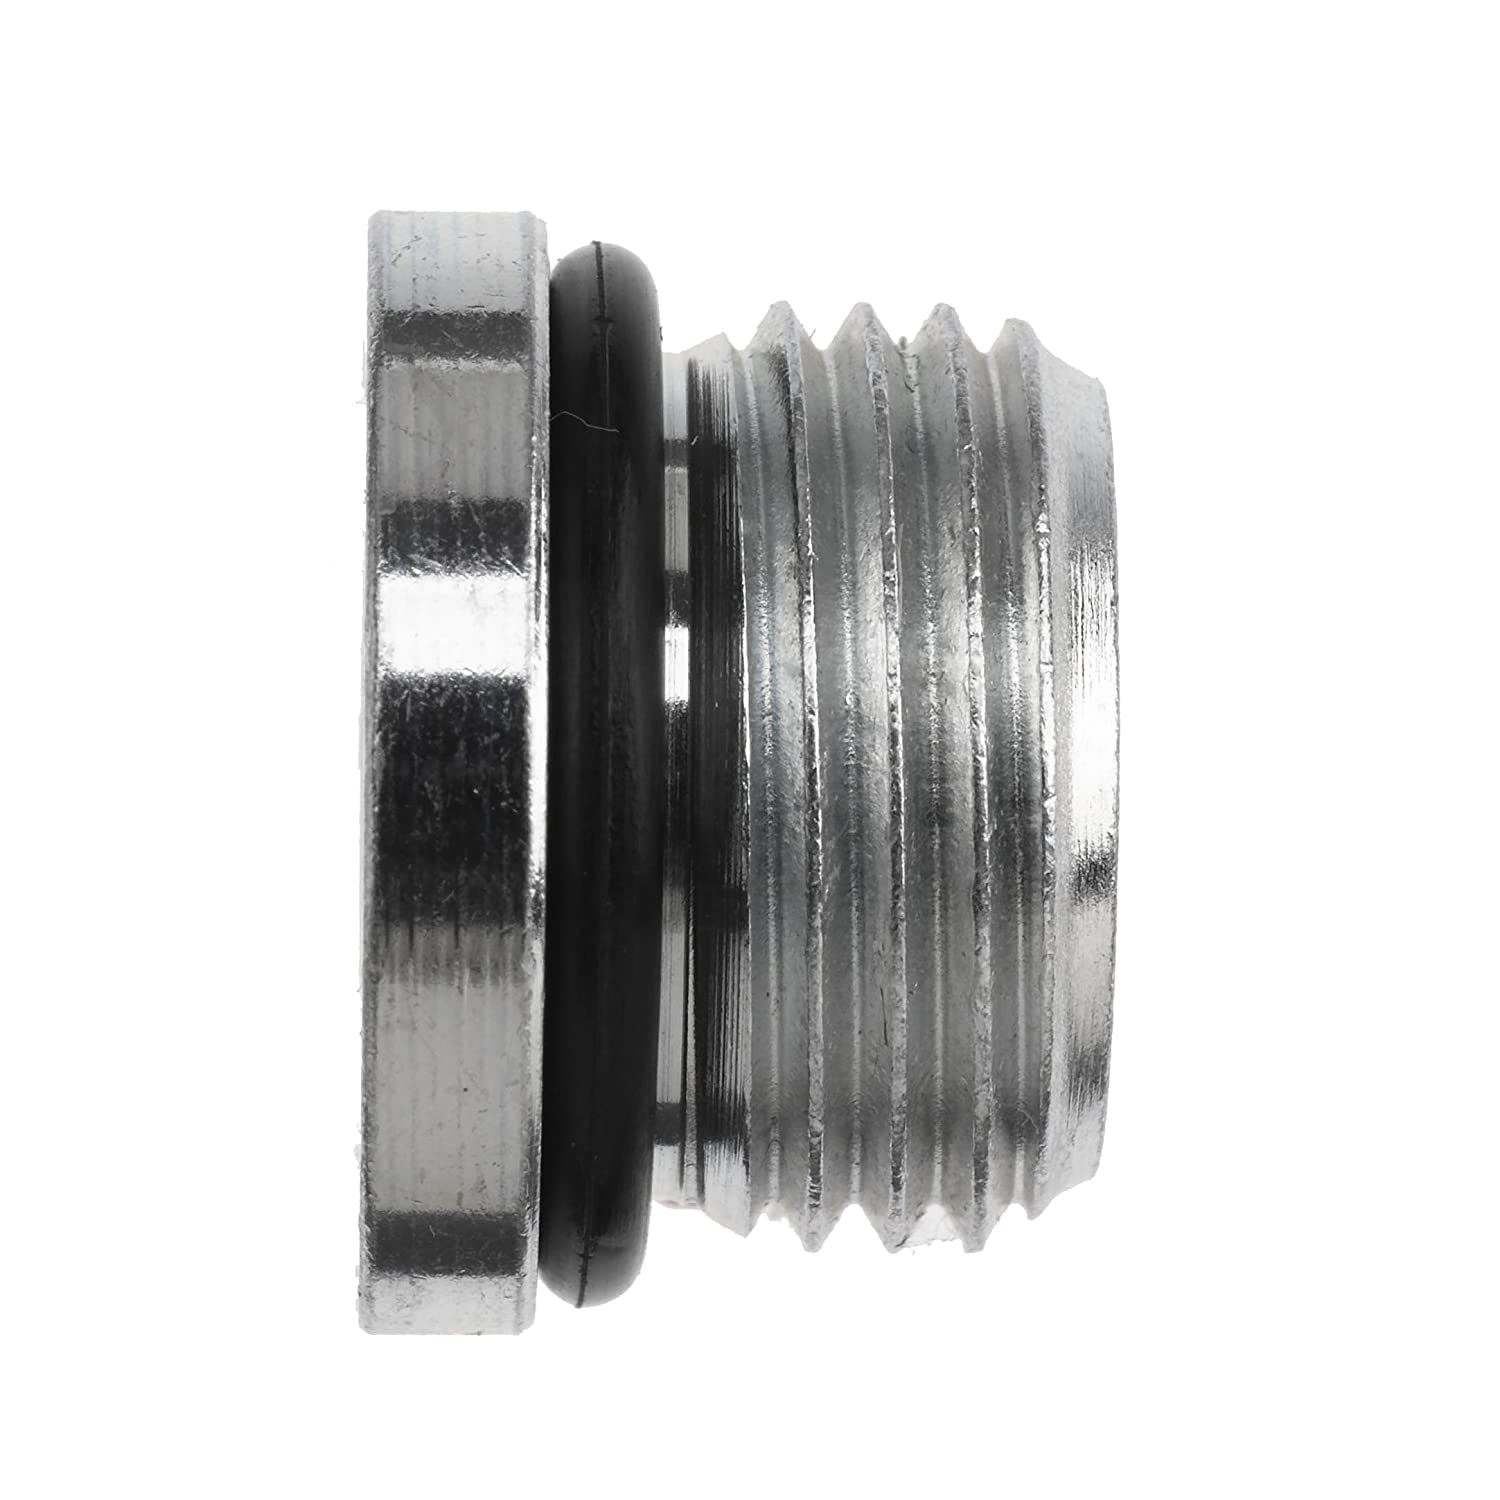 1-5//8-12 SAE ORB x 1-7//8-12 SAE ORB Thread Male O-Ring Boss x Female O-Ring Boss Brennan Industries 6410-20-24-O-SS Stainless Steel Straight Reducer